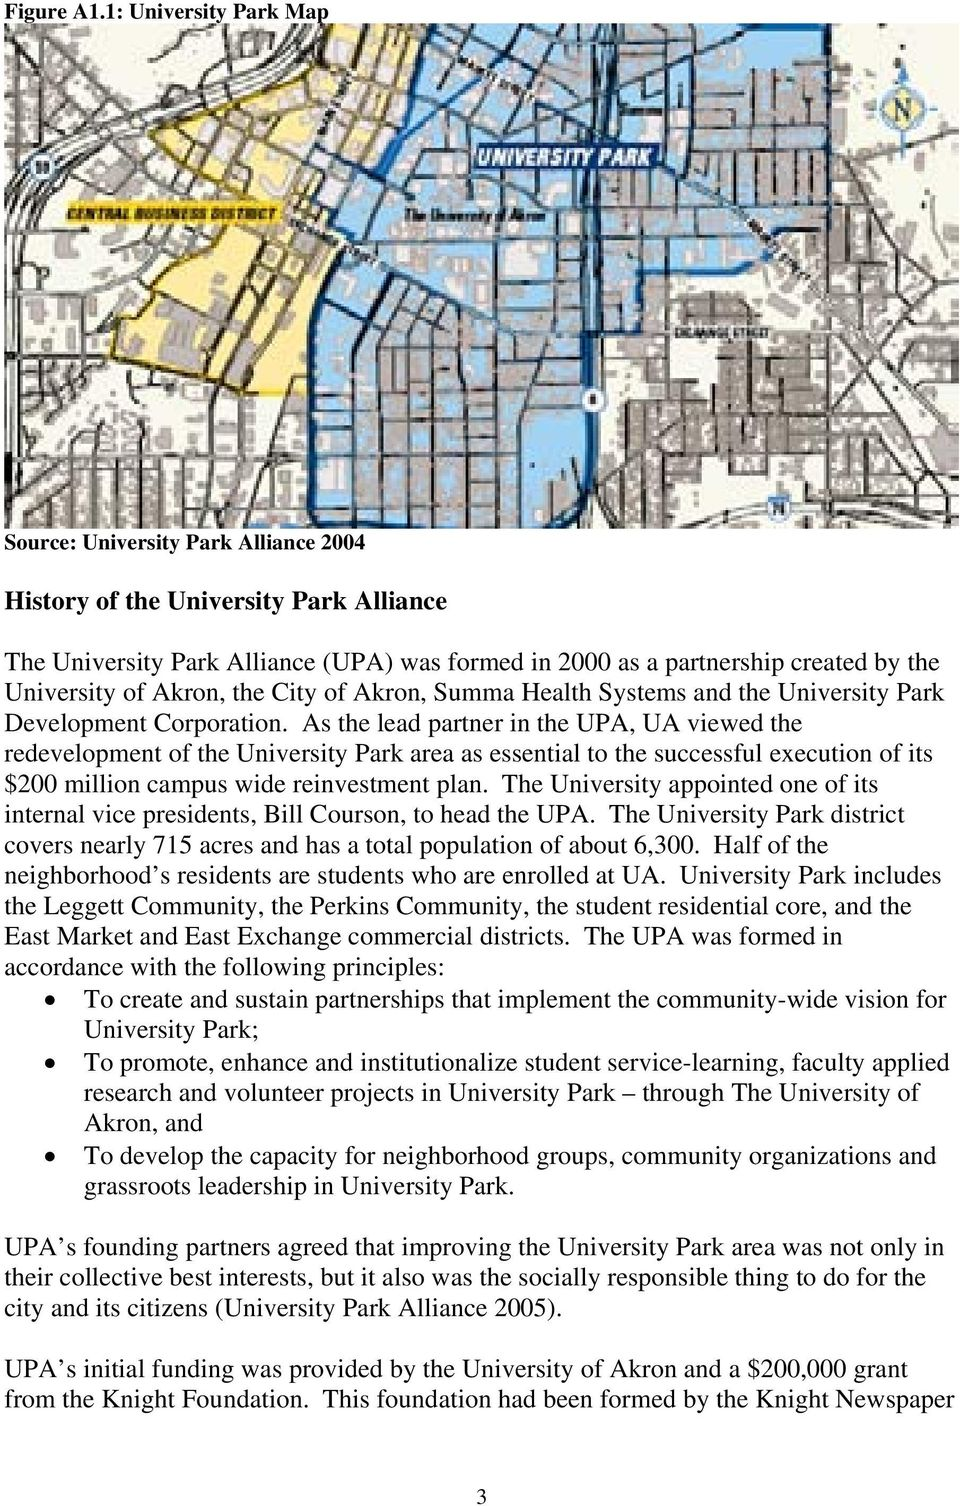 of Akron, the City of Akron, Summa Health Systems and the University Park Development Corporation.